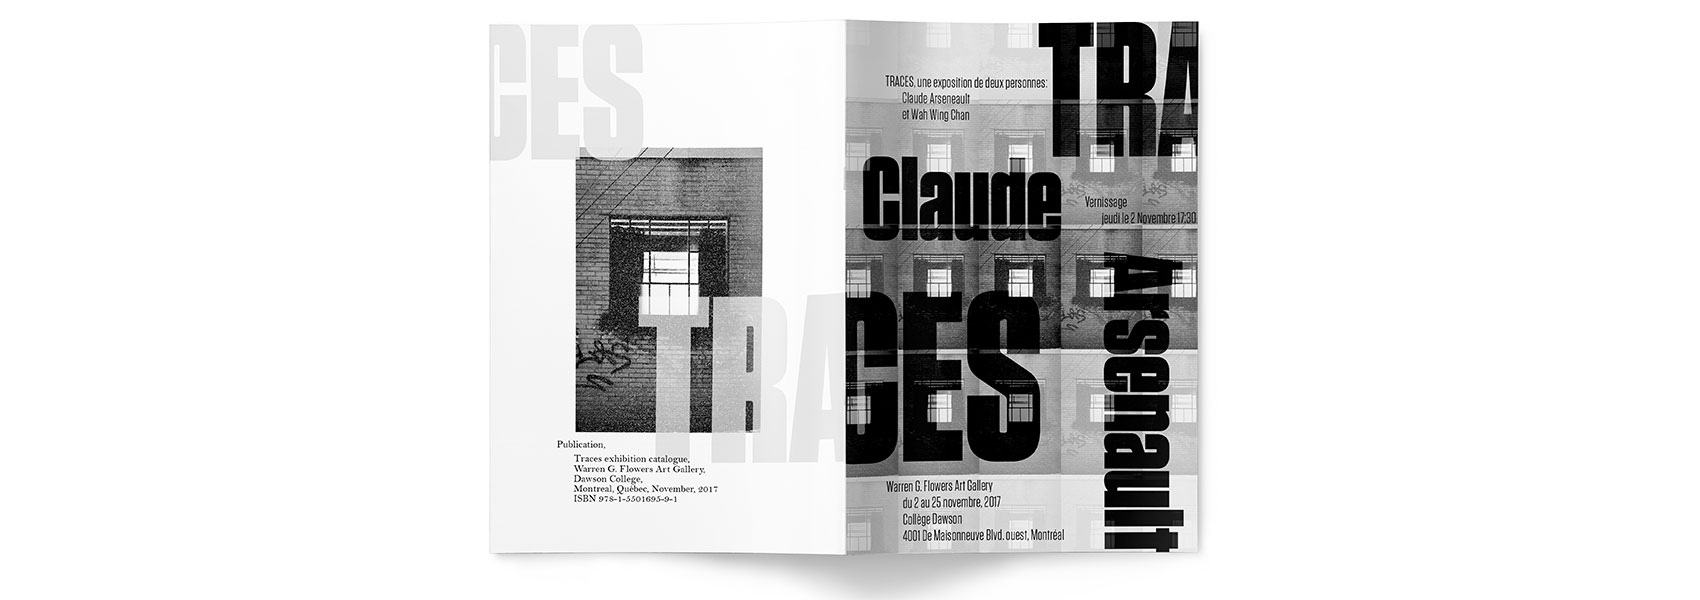 Front and Back Cover of Catalogue featuring Claude Aresenault's Print